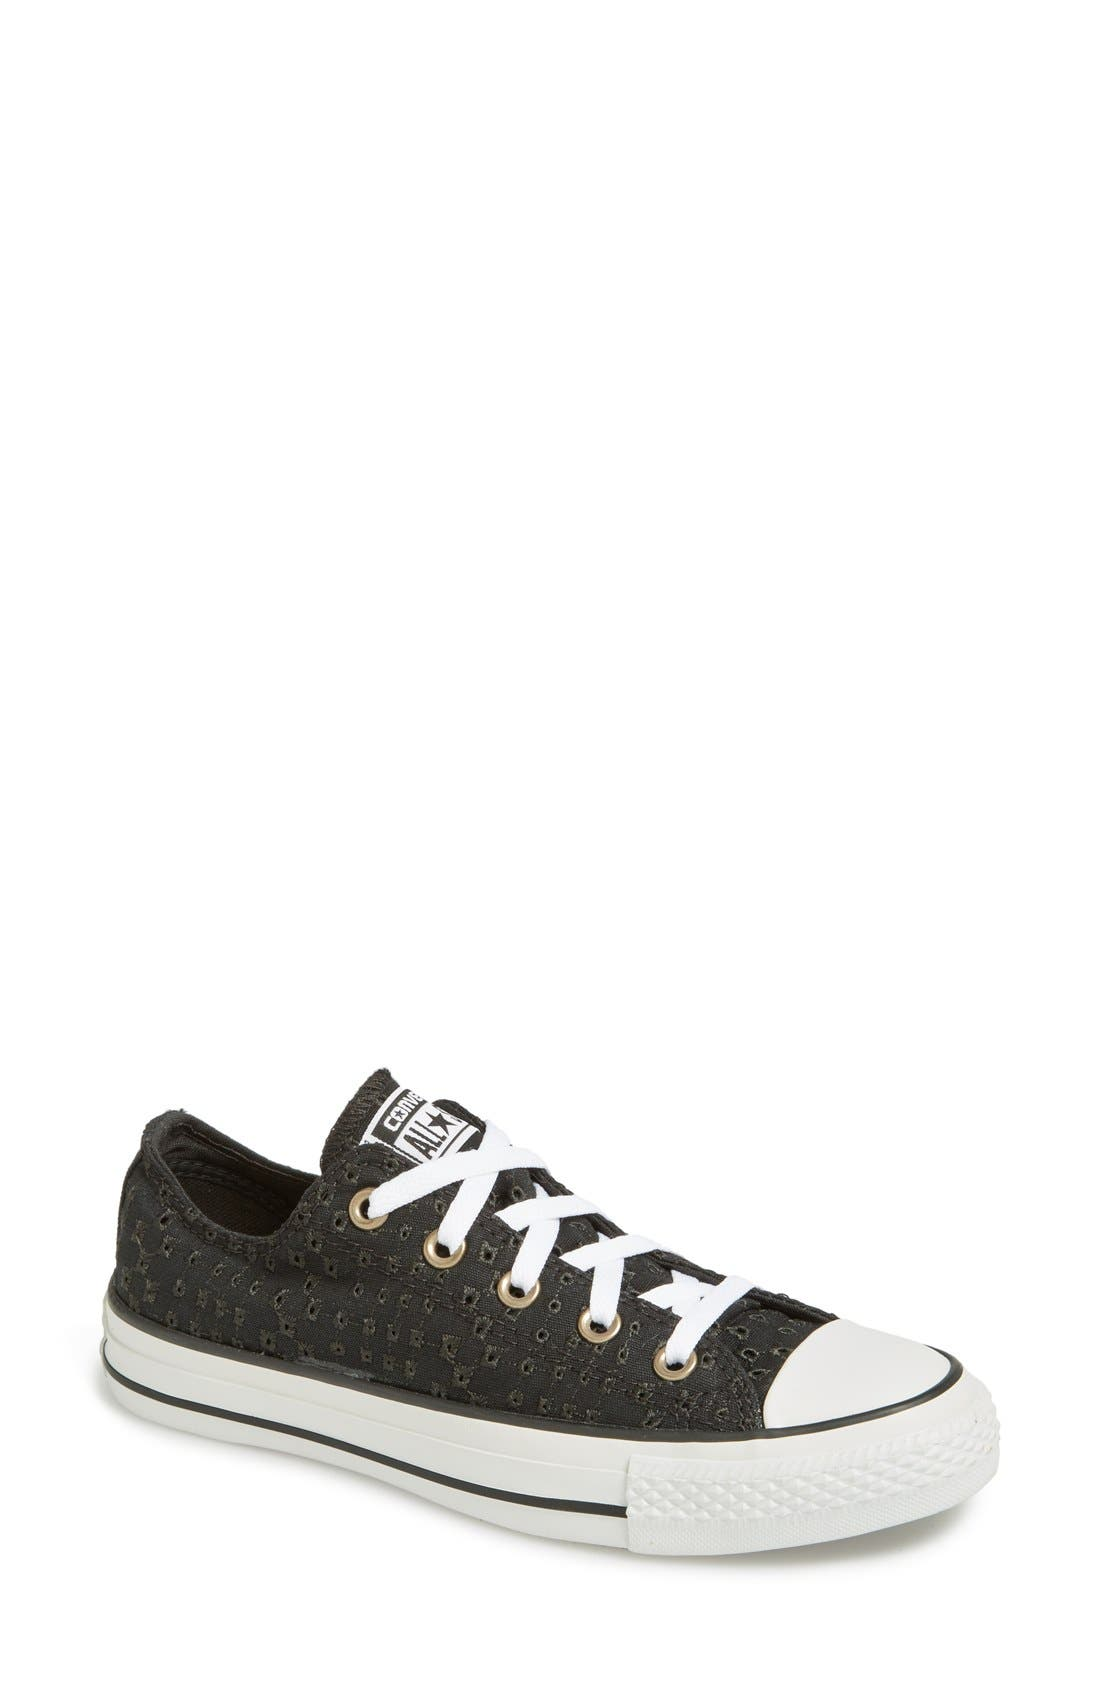 Main Image - Converse Chuck Taylor® All Star® 'Low' Eyelet Perforated Sneaker (Women)